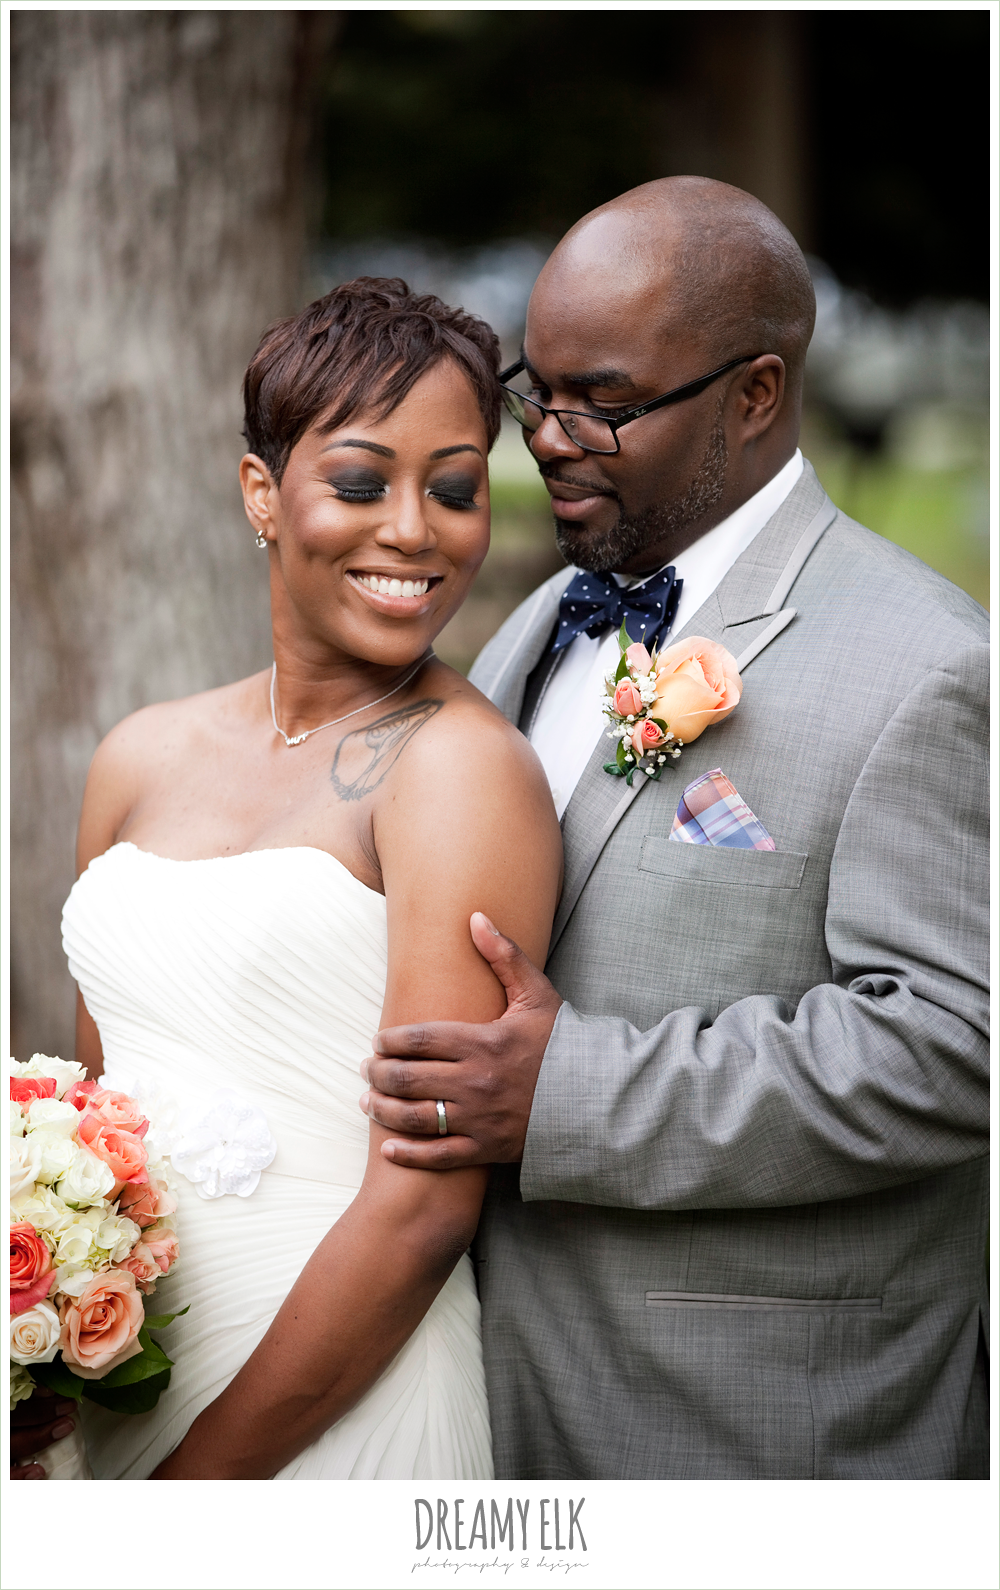 bre'onna & tyrone, the wedding photo contest